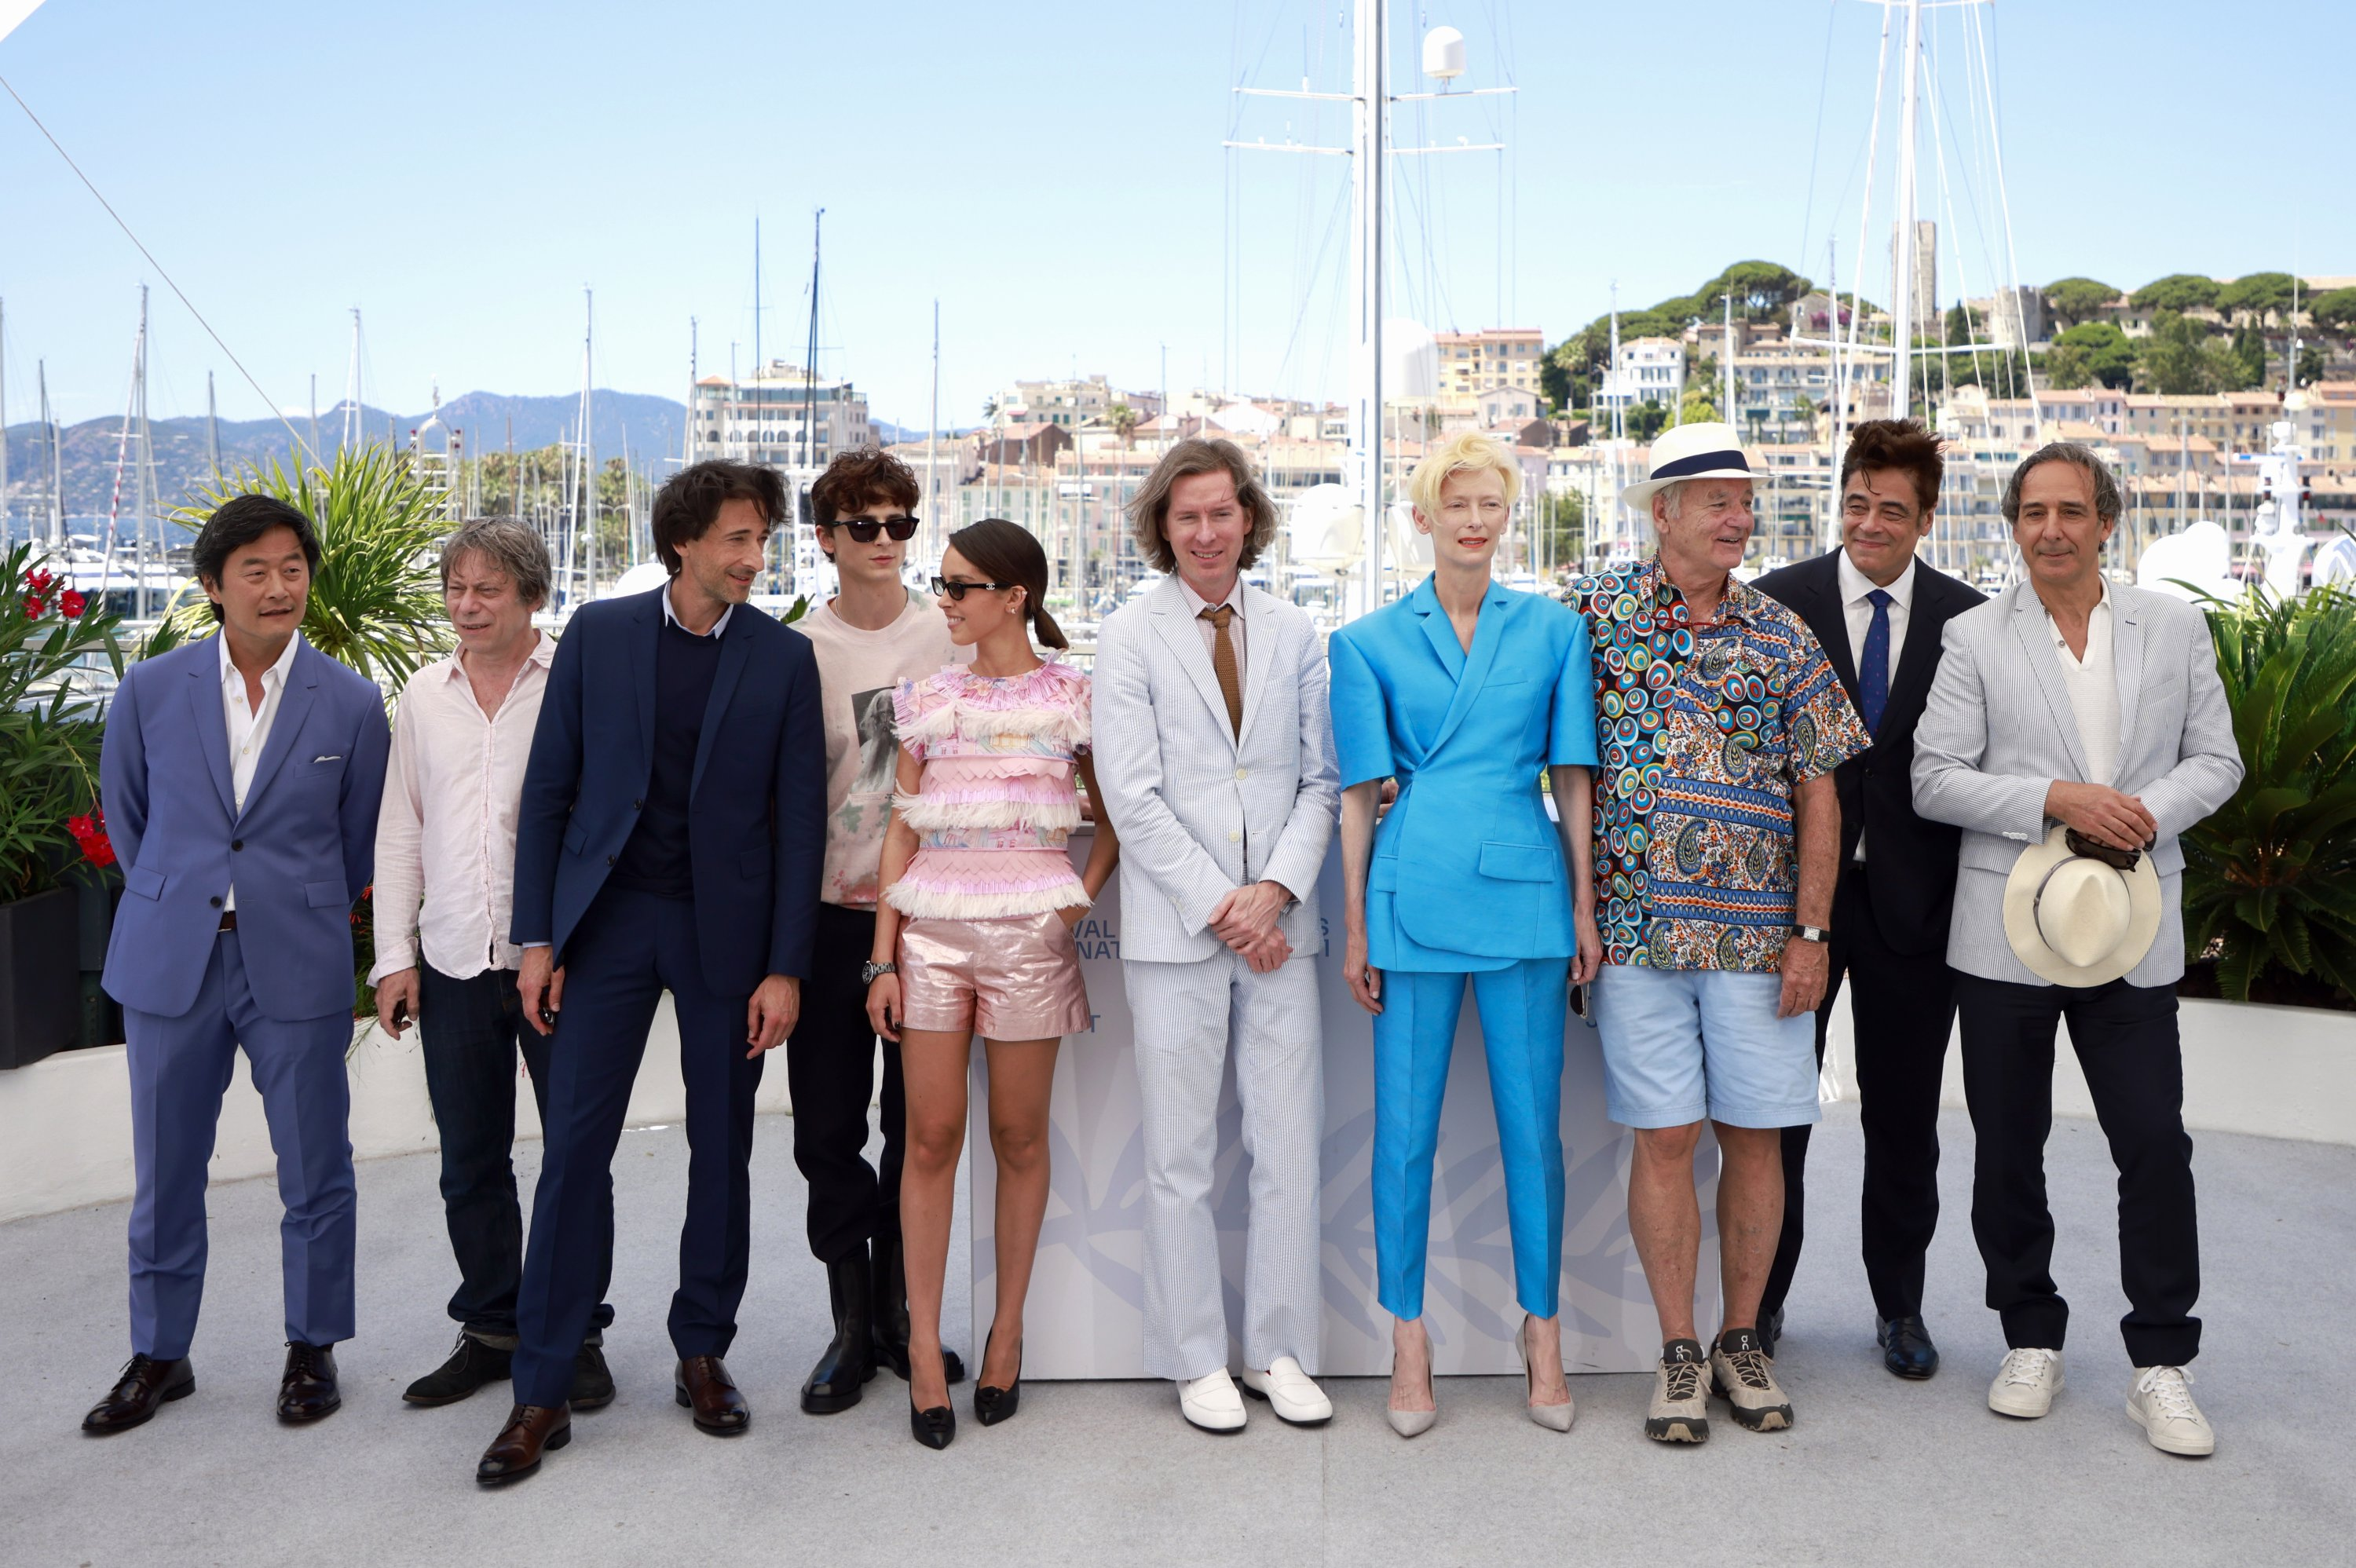 Fromthe leftStephen Park, Mathieu Almaric, Adrien Brody, Timothee Chalamet,Lyna Khoudri, Wes Anderson, Tilda Swinton, Bill Murray, Benicio Del Toro andAlexandre Desplatpose during a photocall for the film'The French Dispatch,' at the 74th Cannes Film Festival inCannes, France, July 13, 2021. (Reuters Photo)